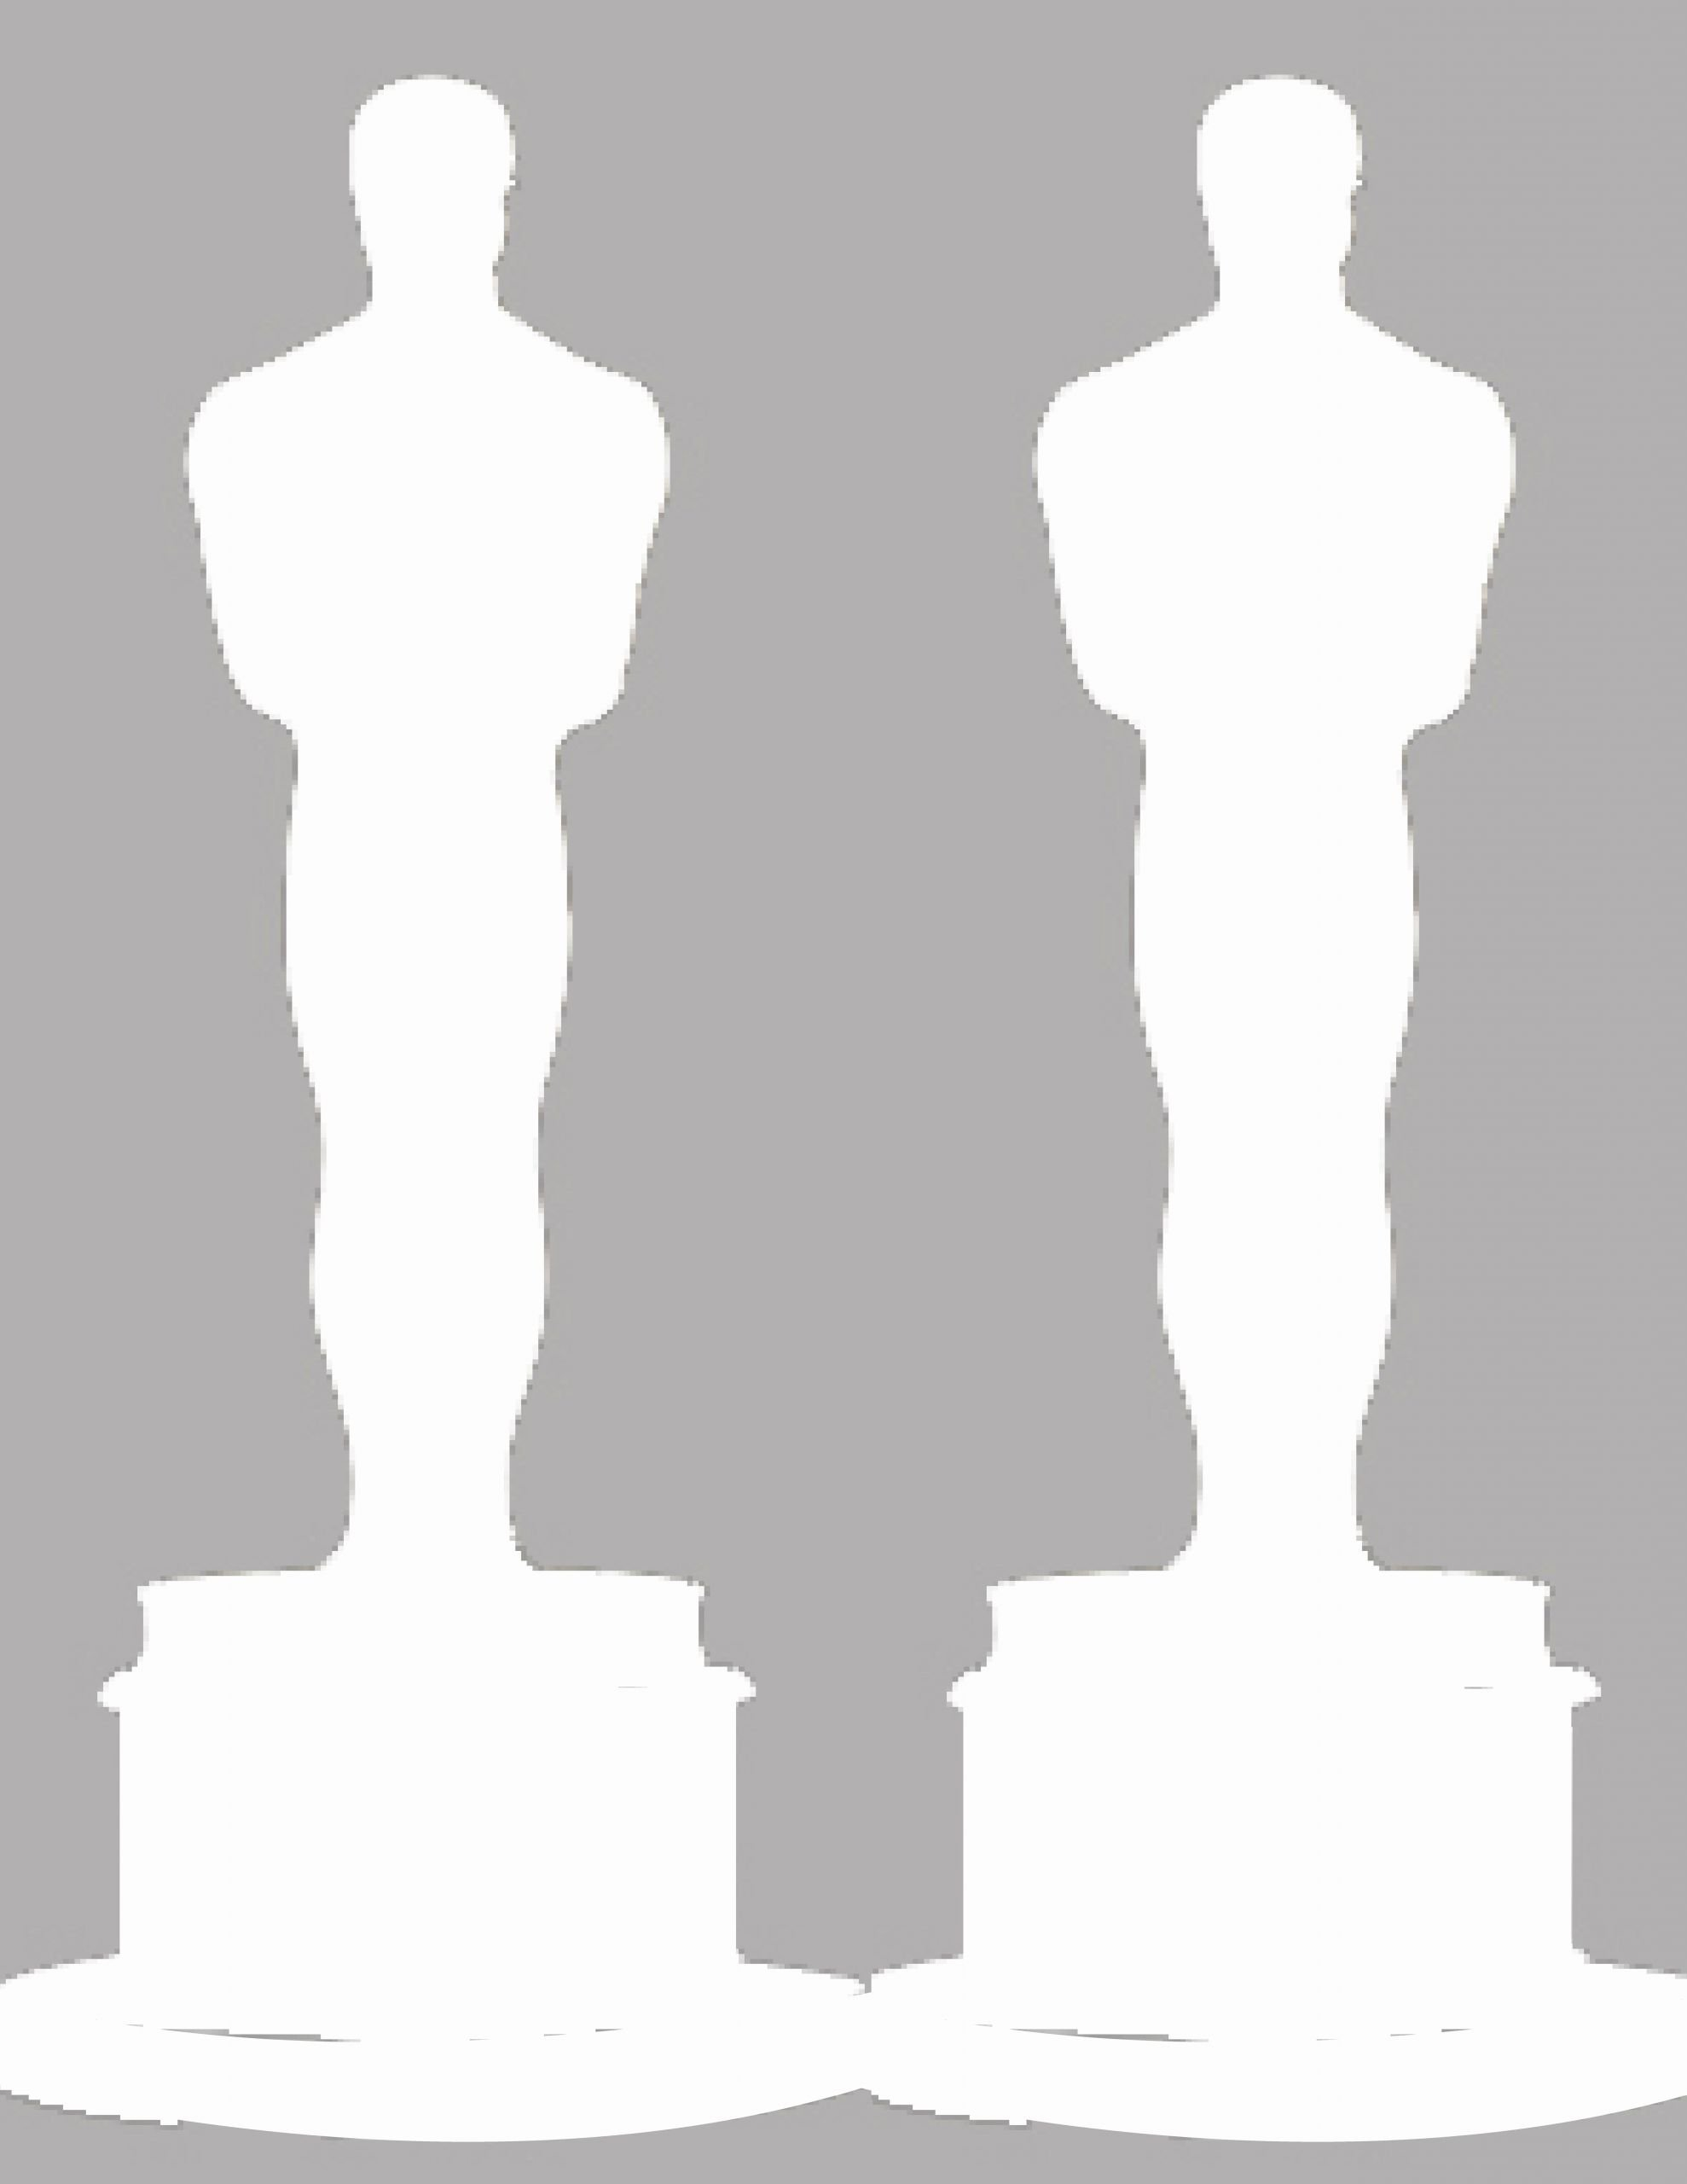 Oscar Award Trophy Template Awesome the Creative Side Of Things